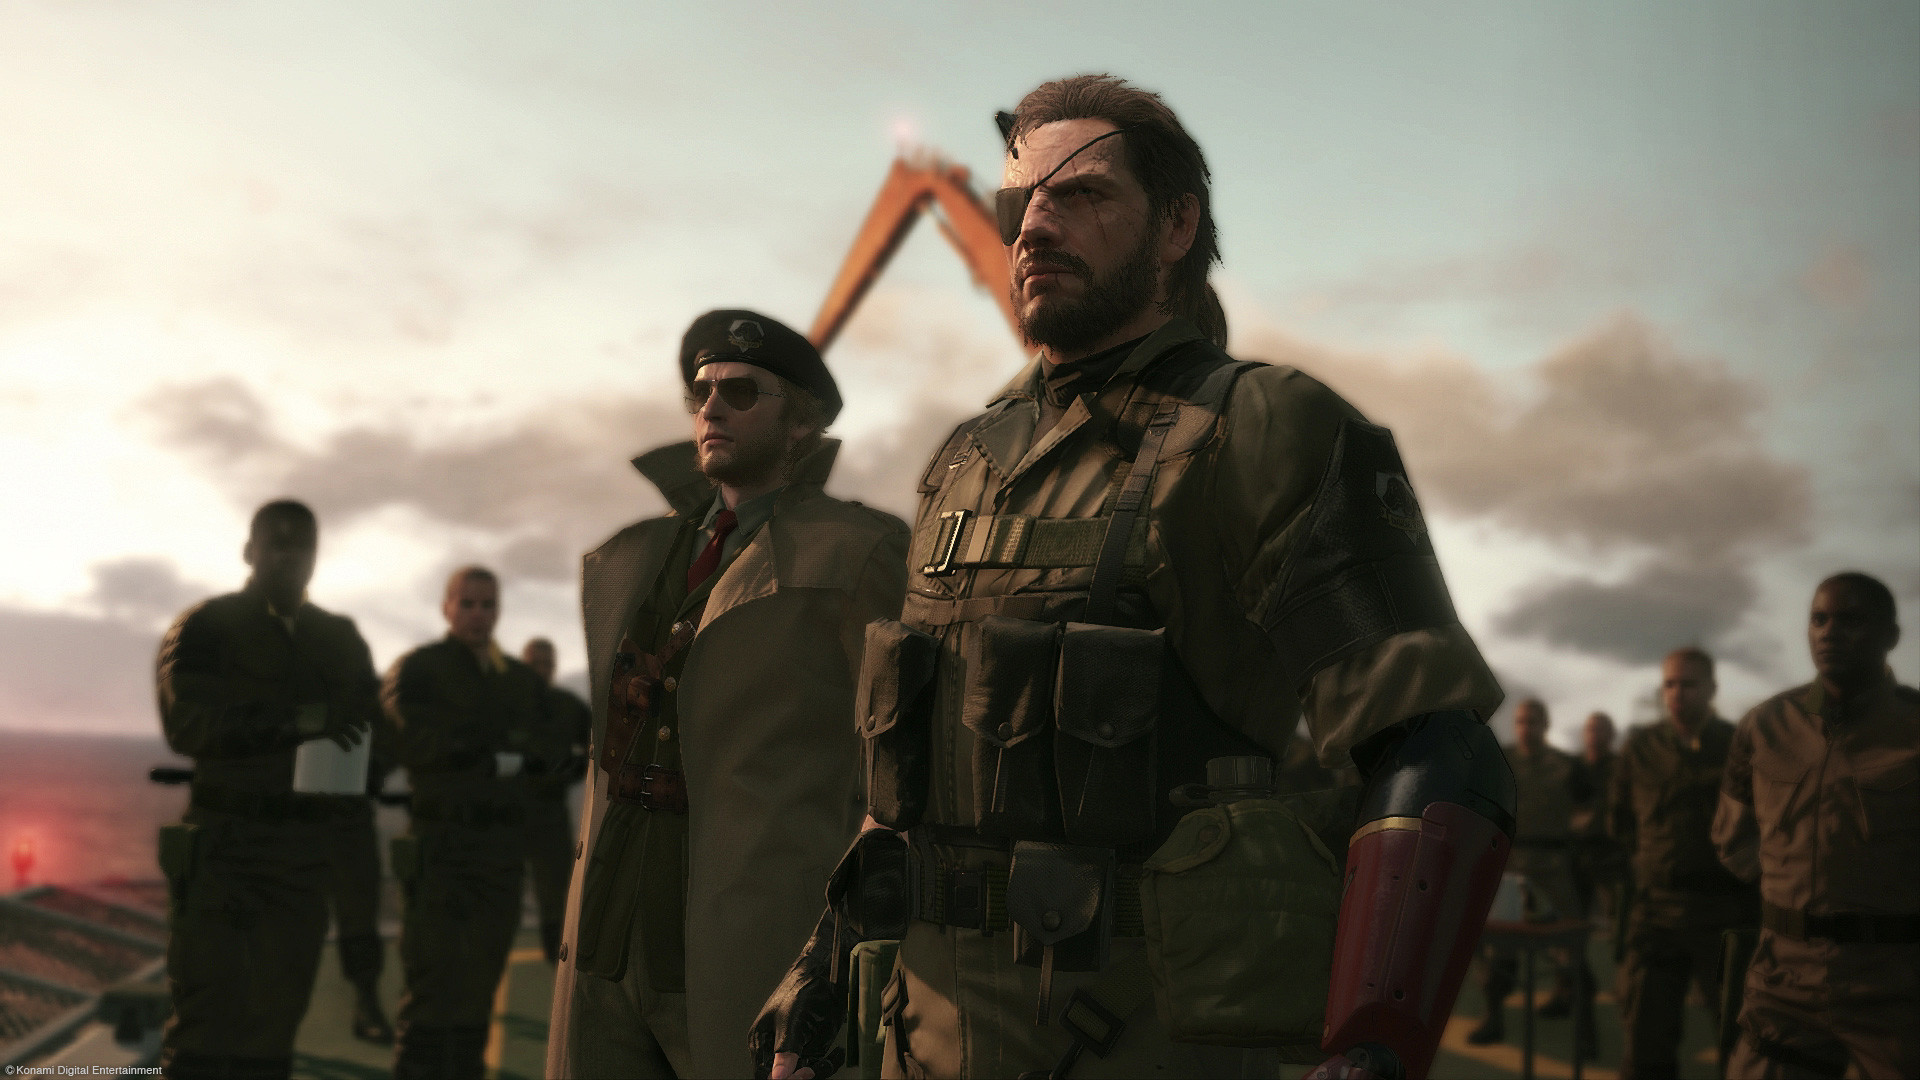 Metal Gear Solid V: The Phantom Pain hd desktop